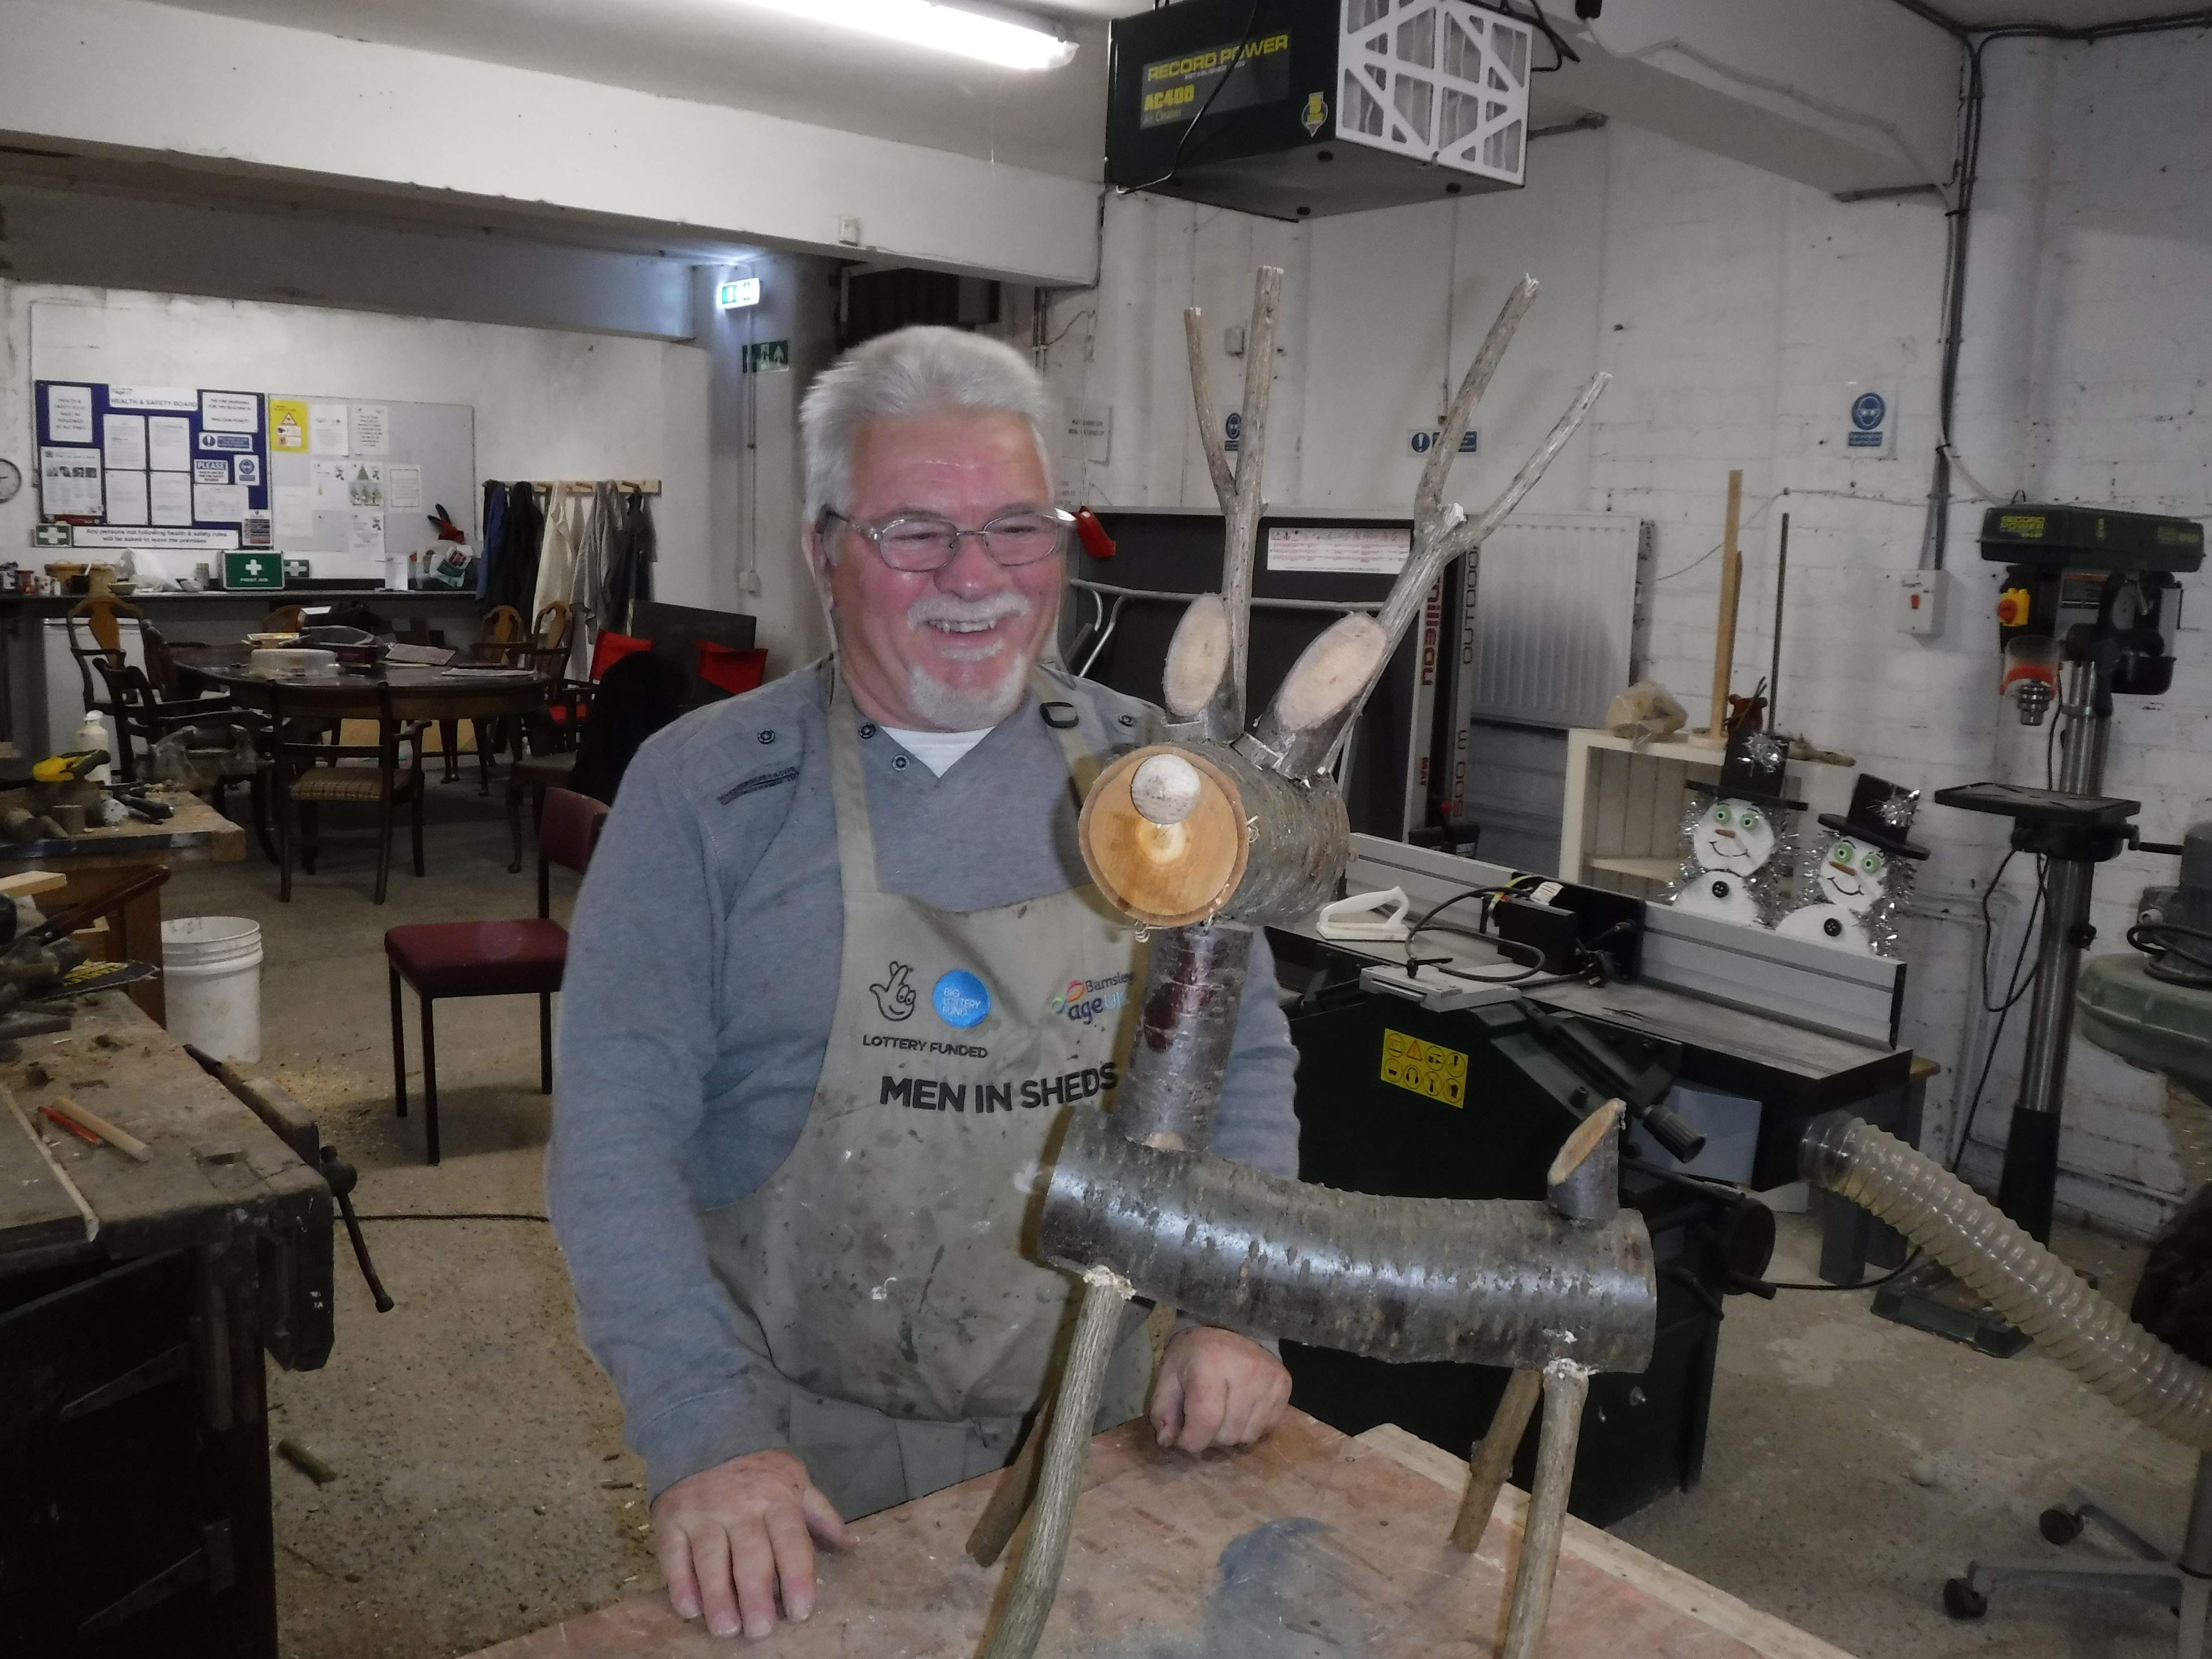 Steve at the Age UK Barnsley Men in Sheds Project